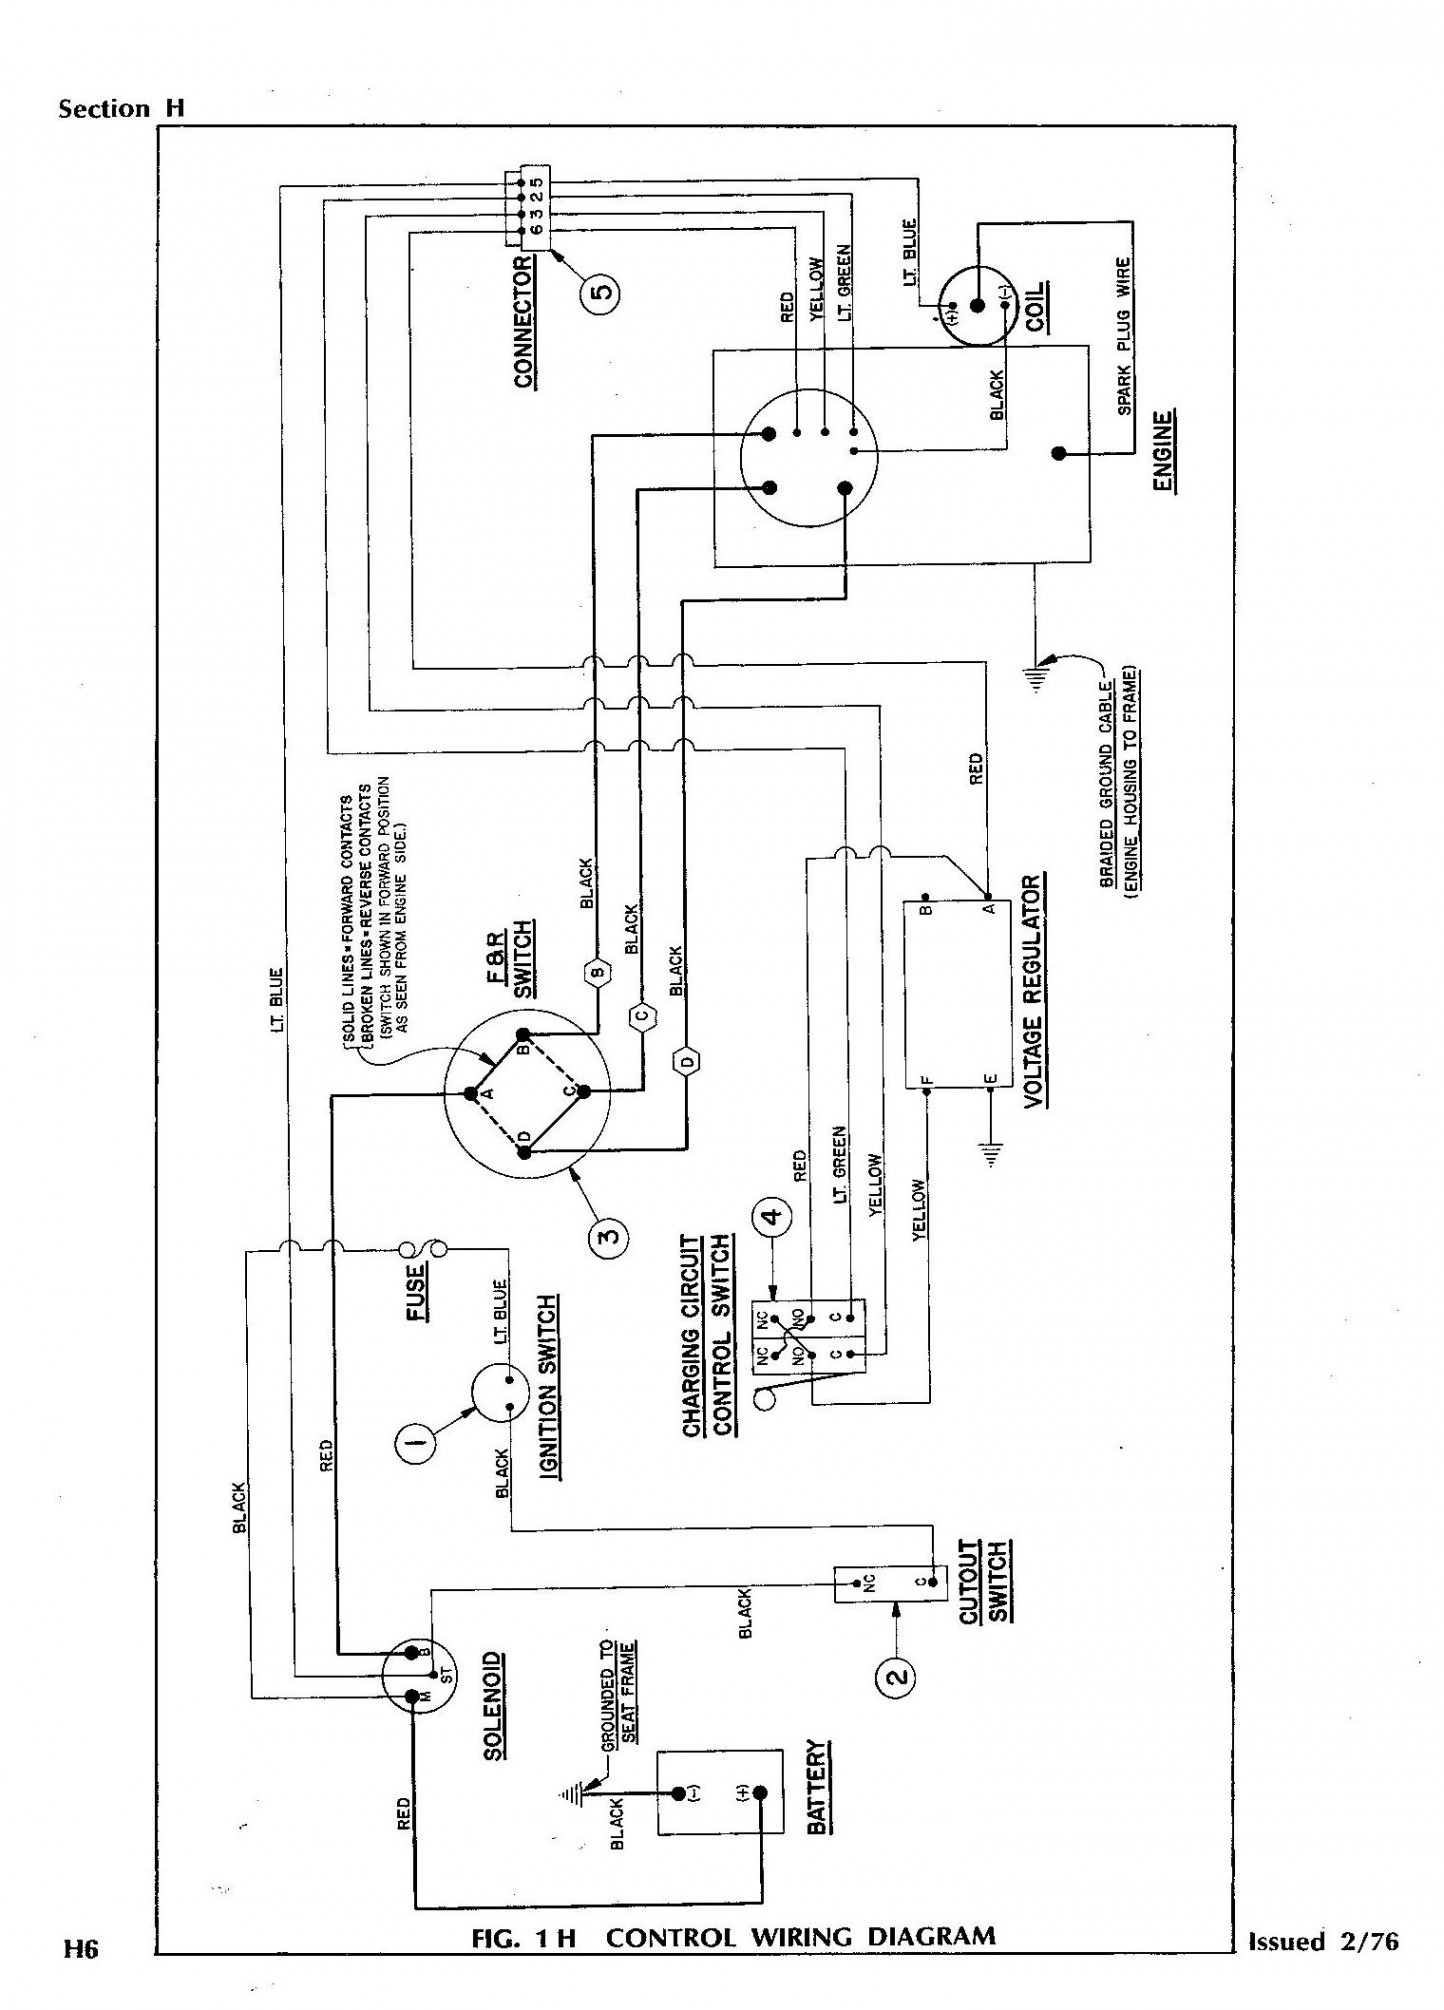 DIAGRAM] Easy Go Wiring Diagram FULL Version HD Quality Wiring Diagram -  TYPEBATTERYWIRING.SAINTLOUBE-AMADES.FRWiring And Fuse Database